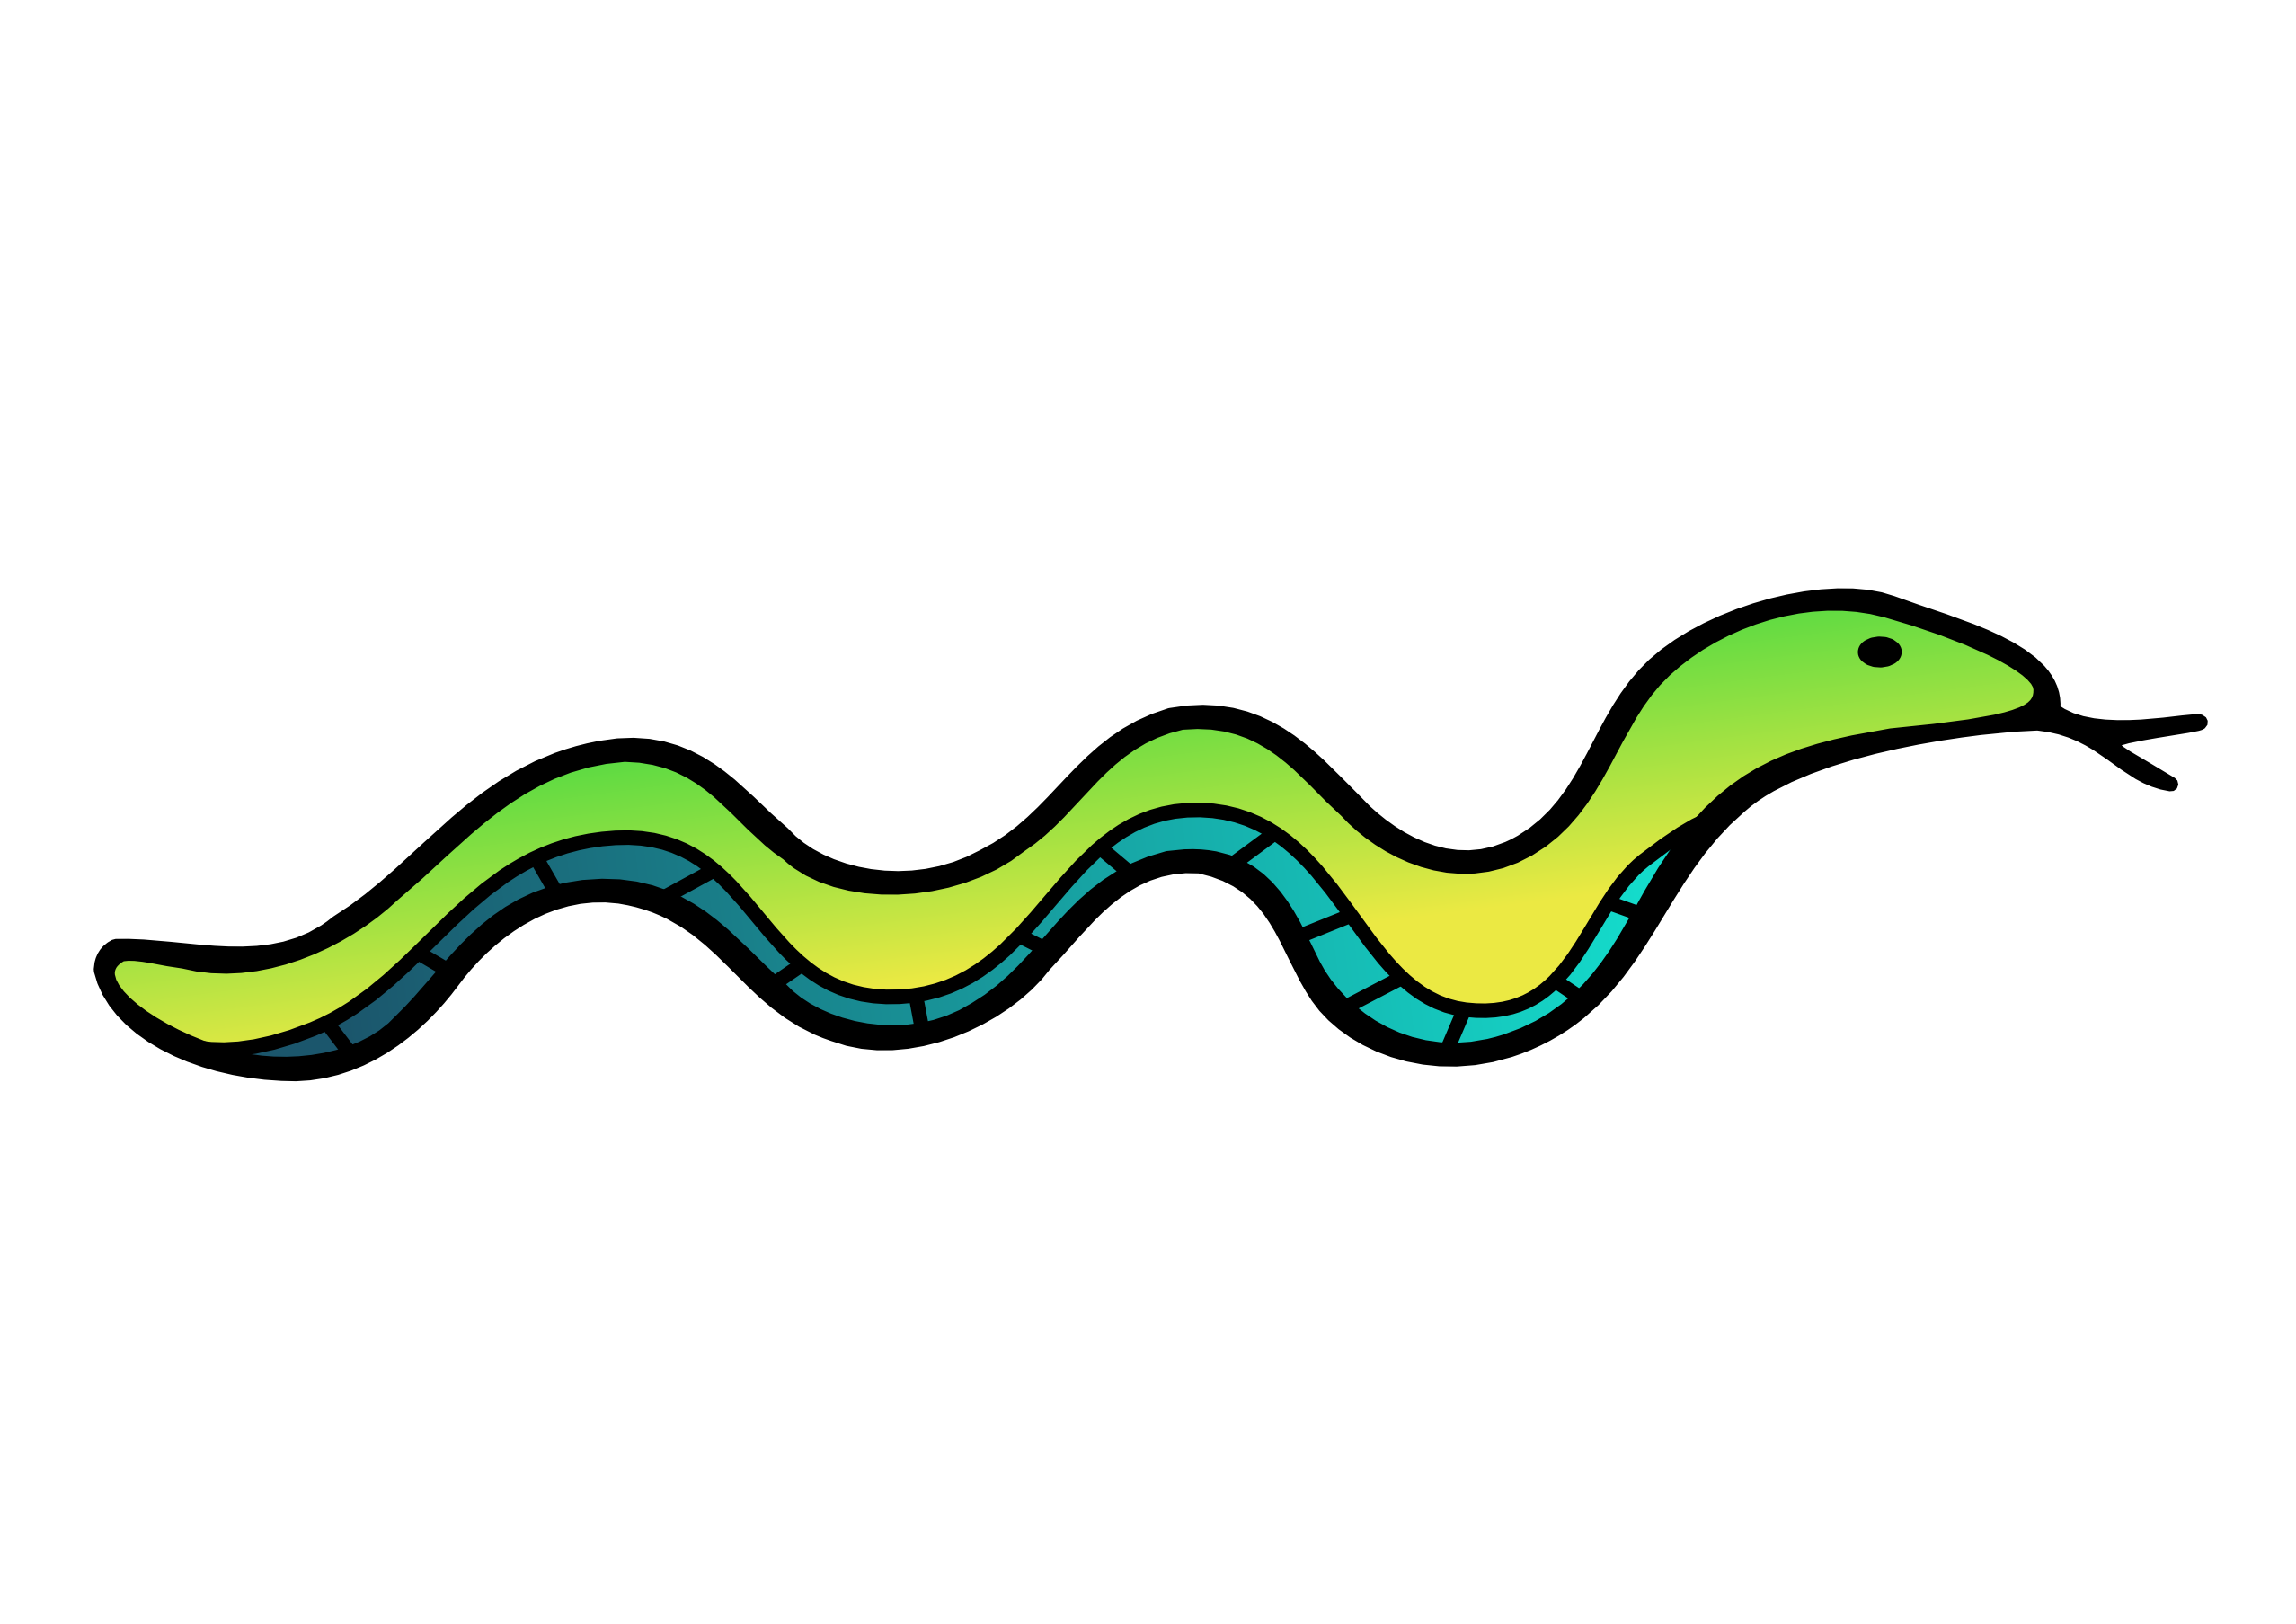 Water snake clipart.